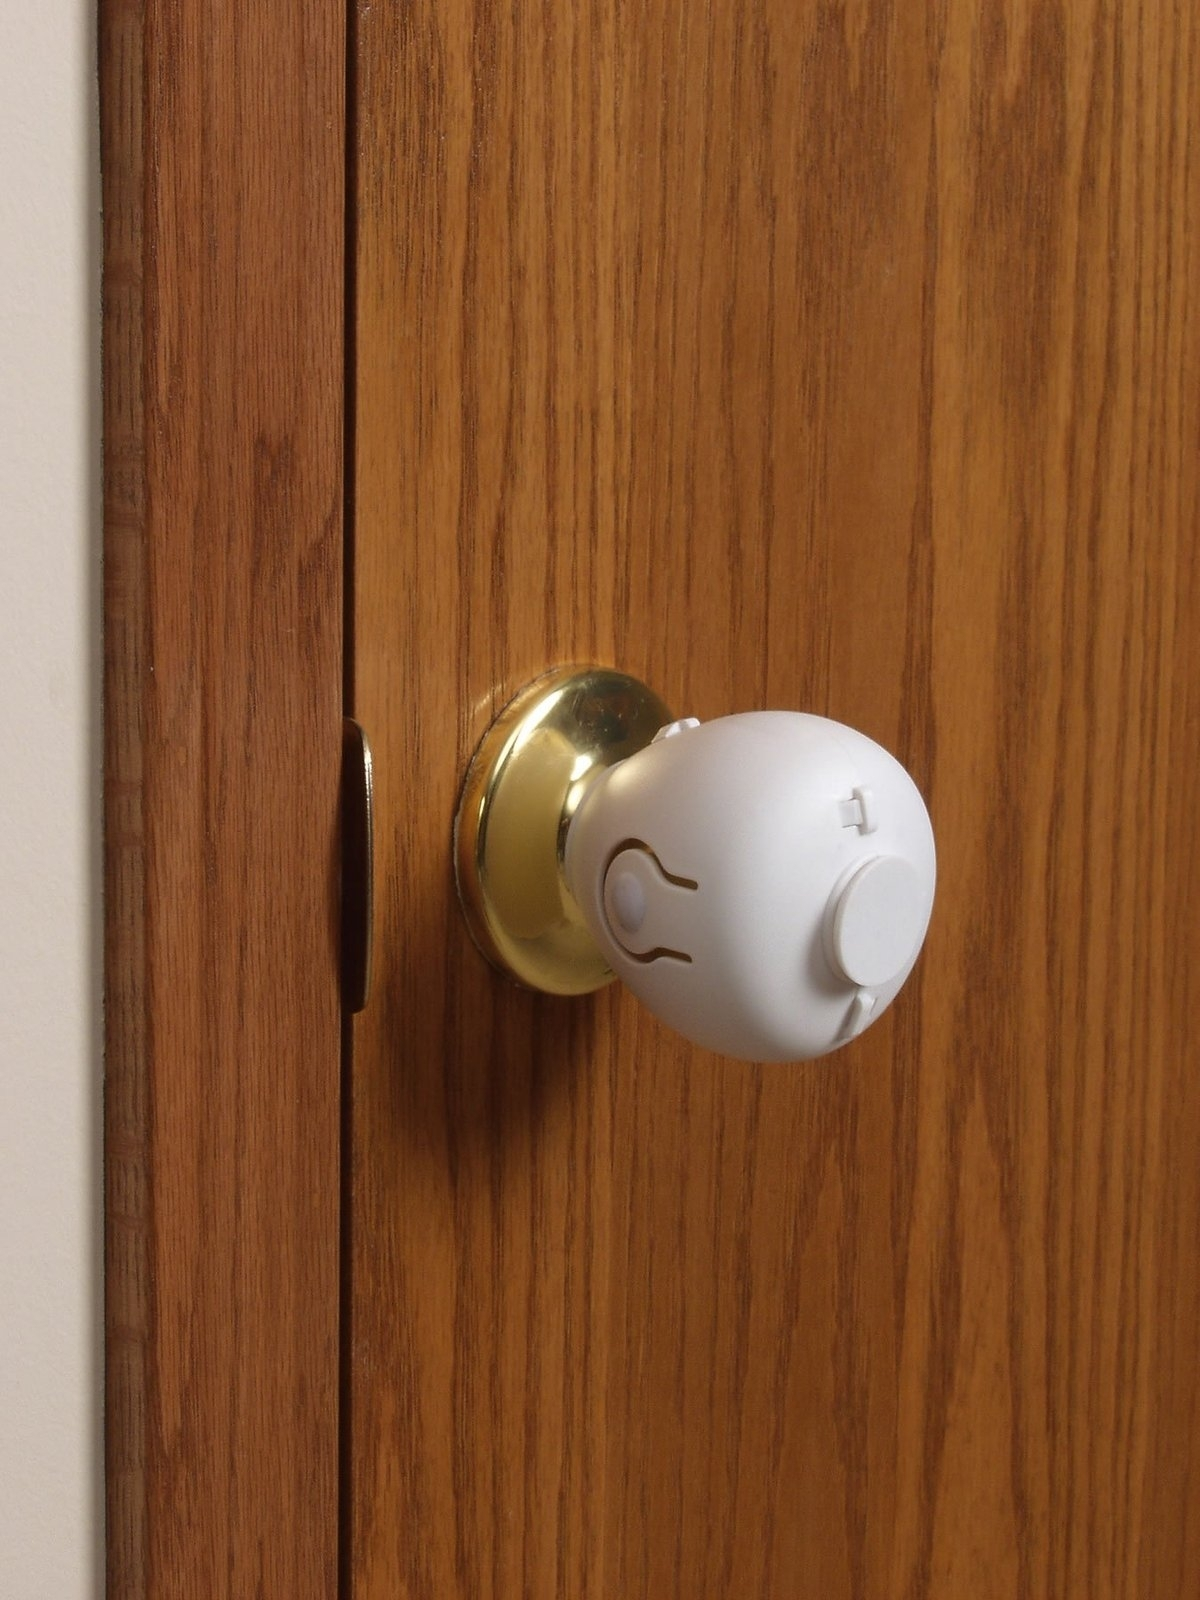 Oval Shaped Door Knob Covers